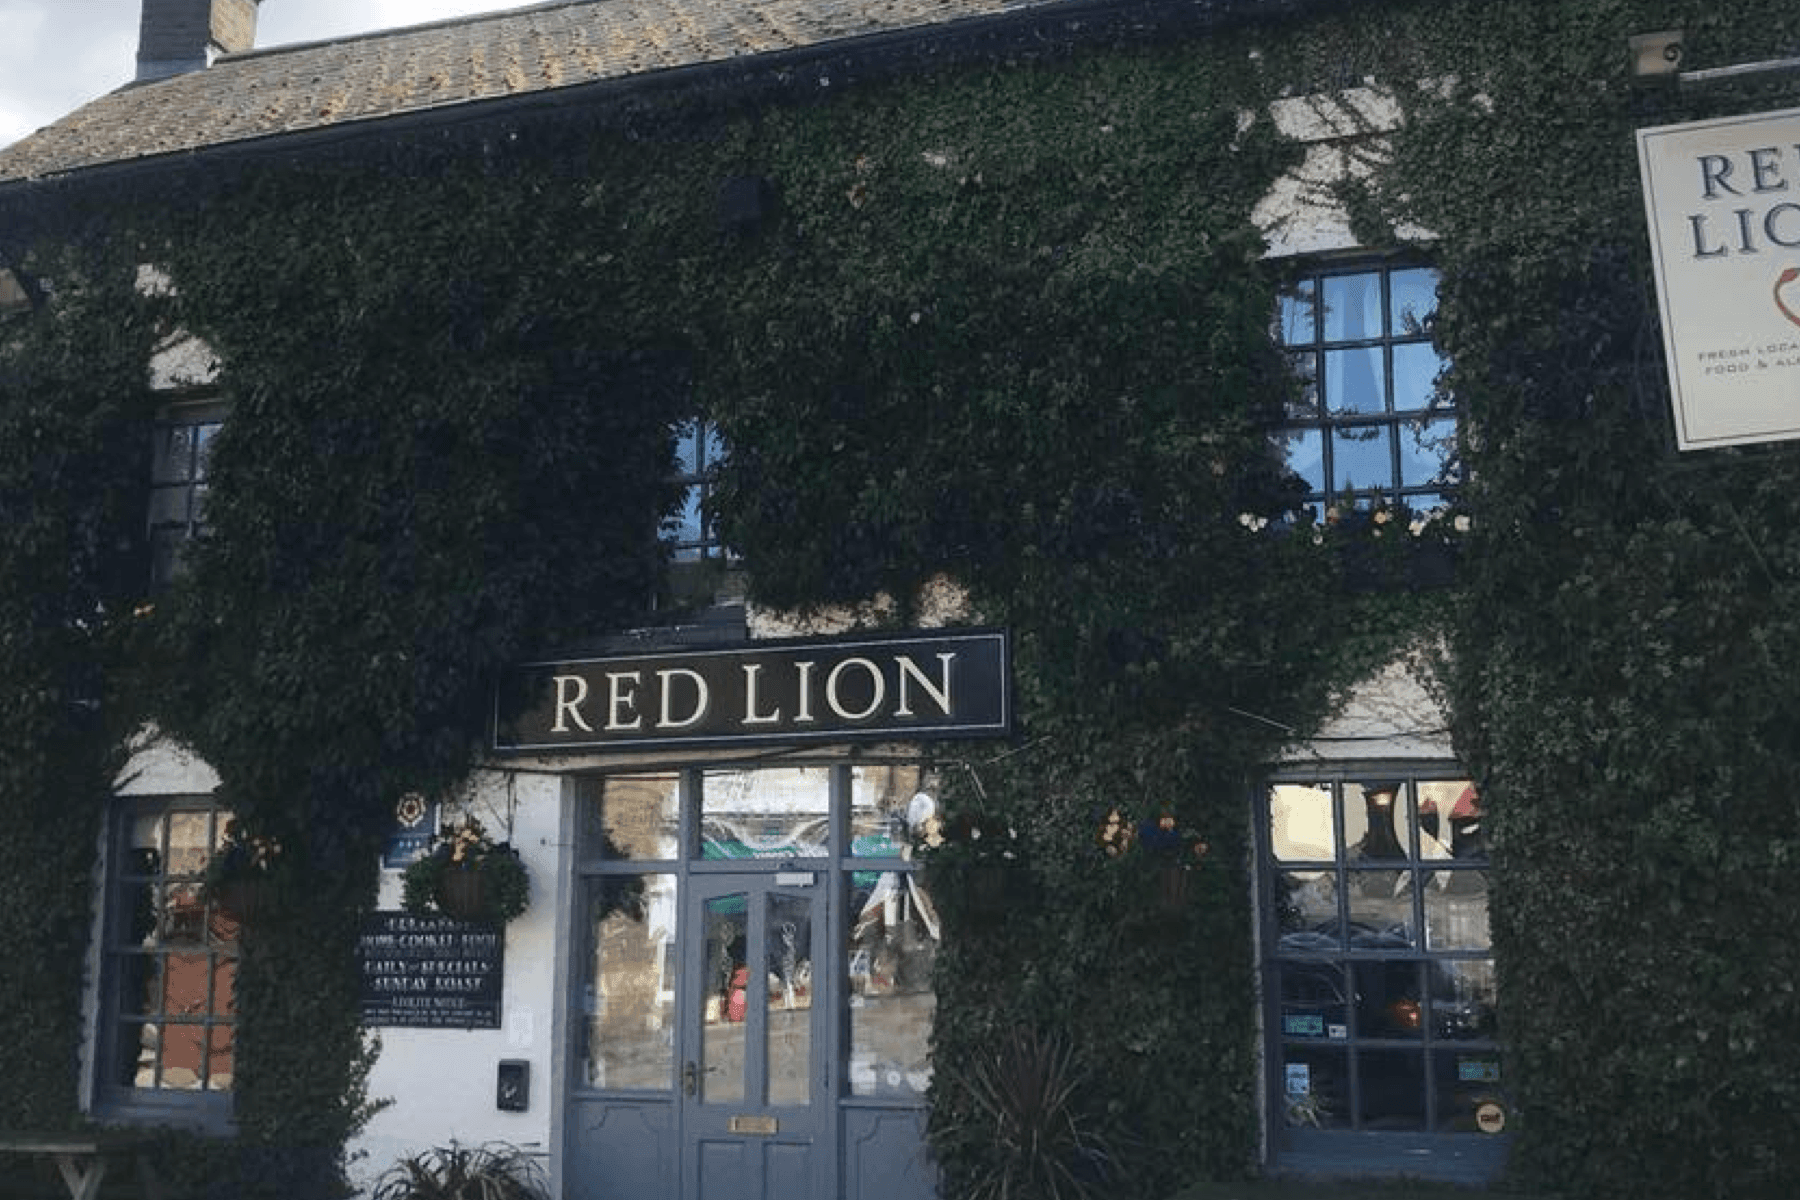 The Red Lion, Stretham